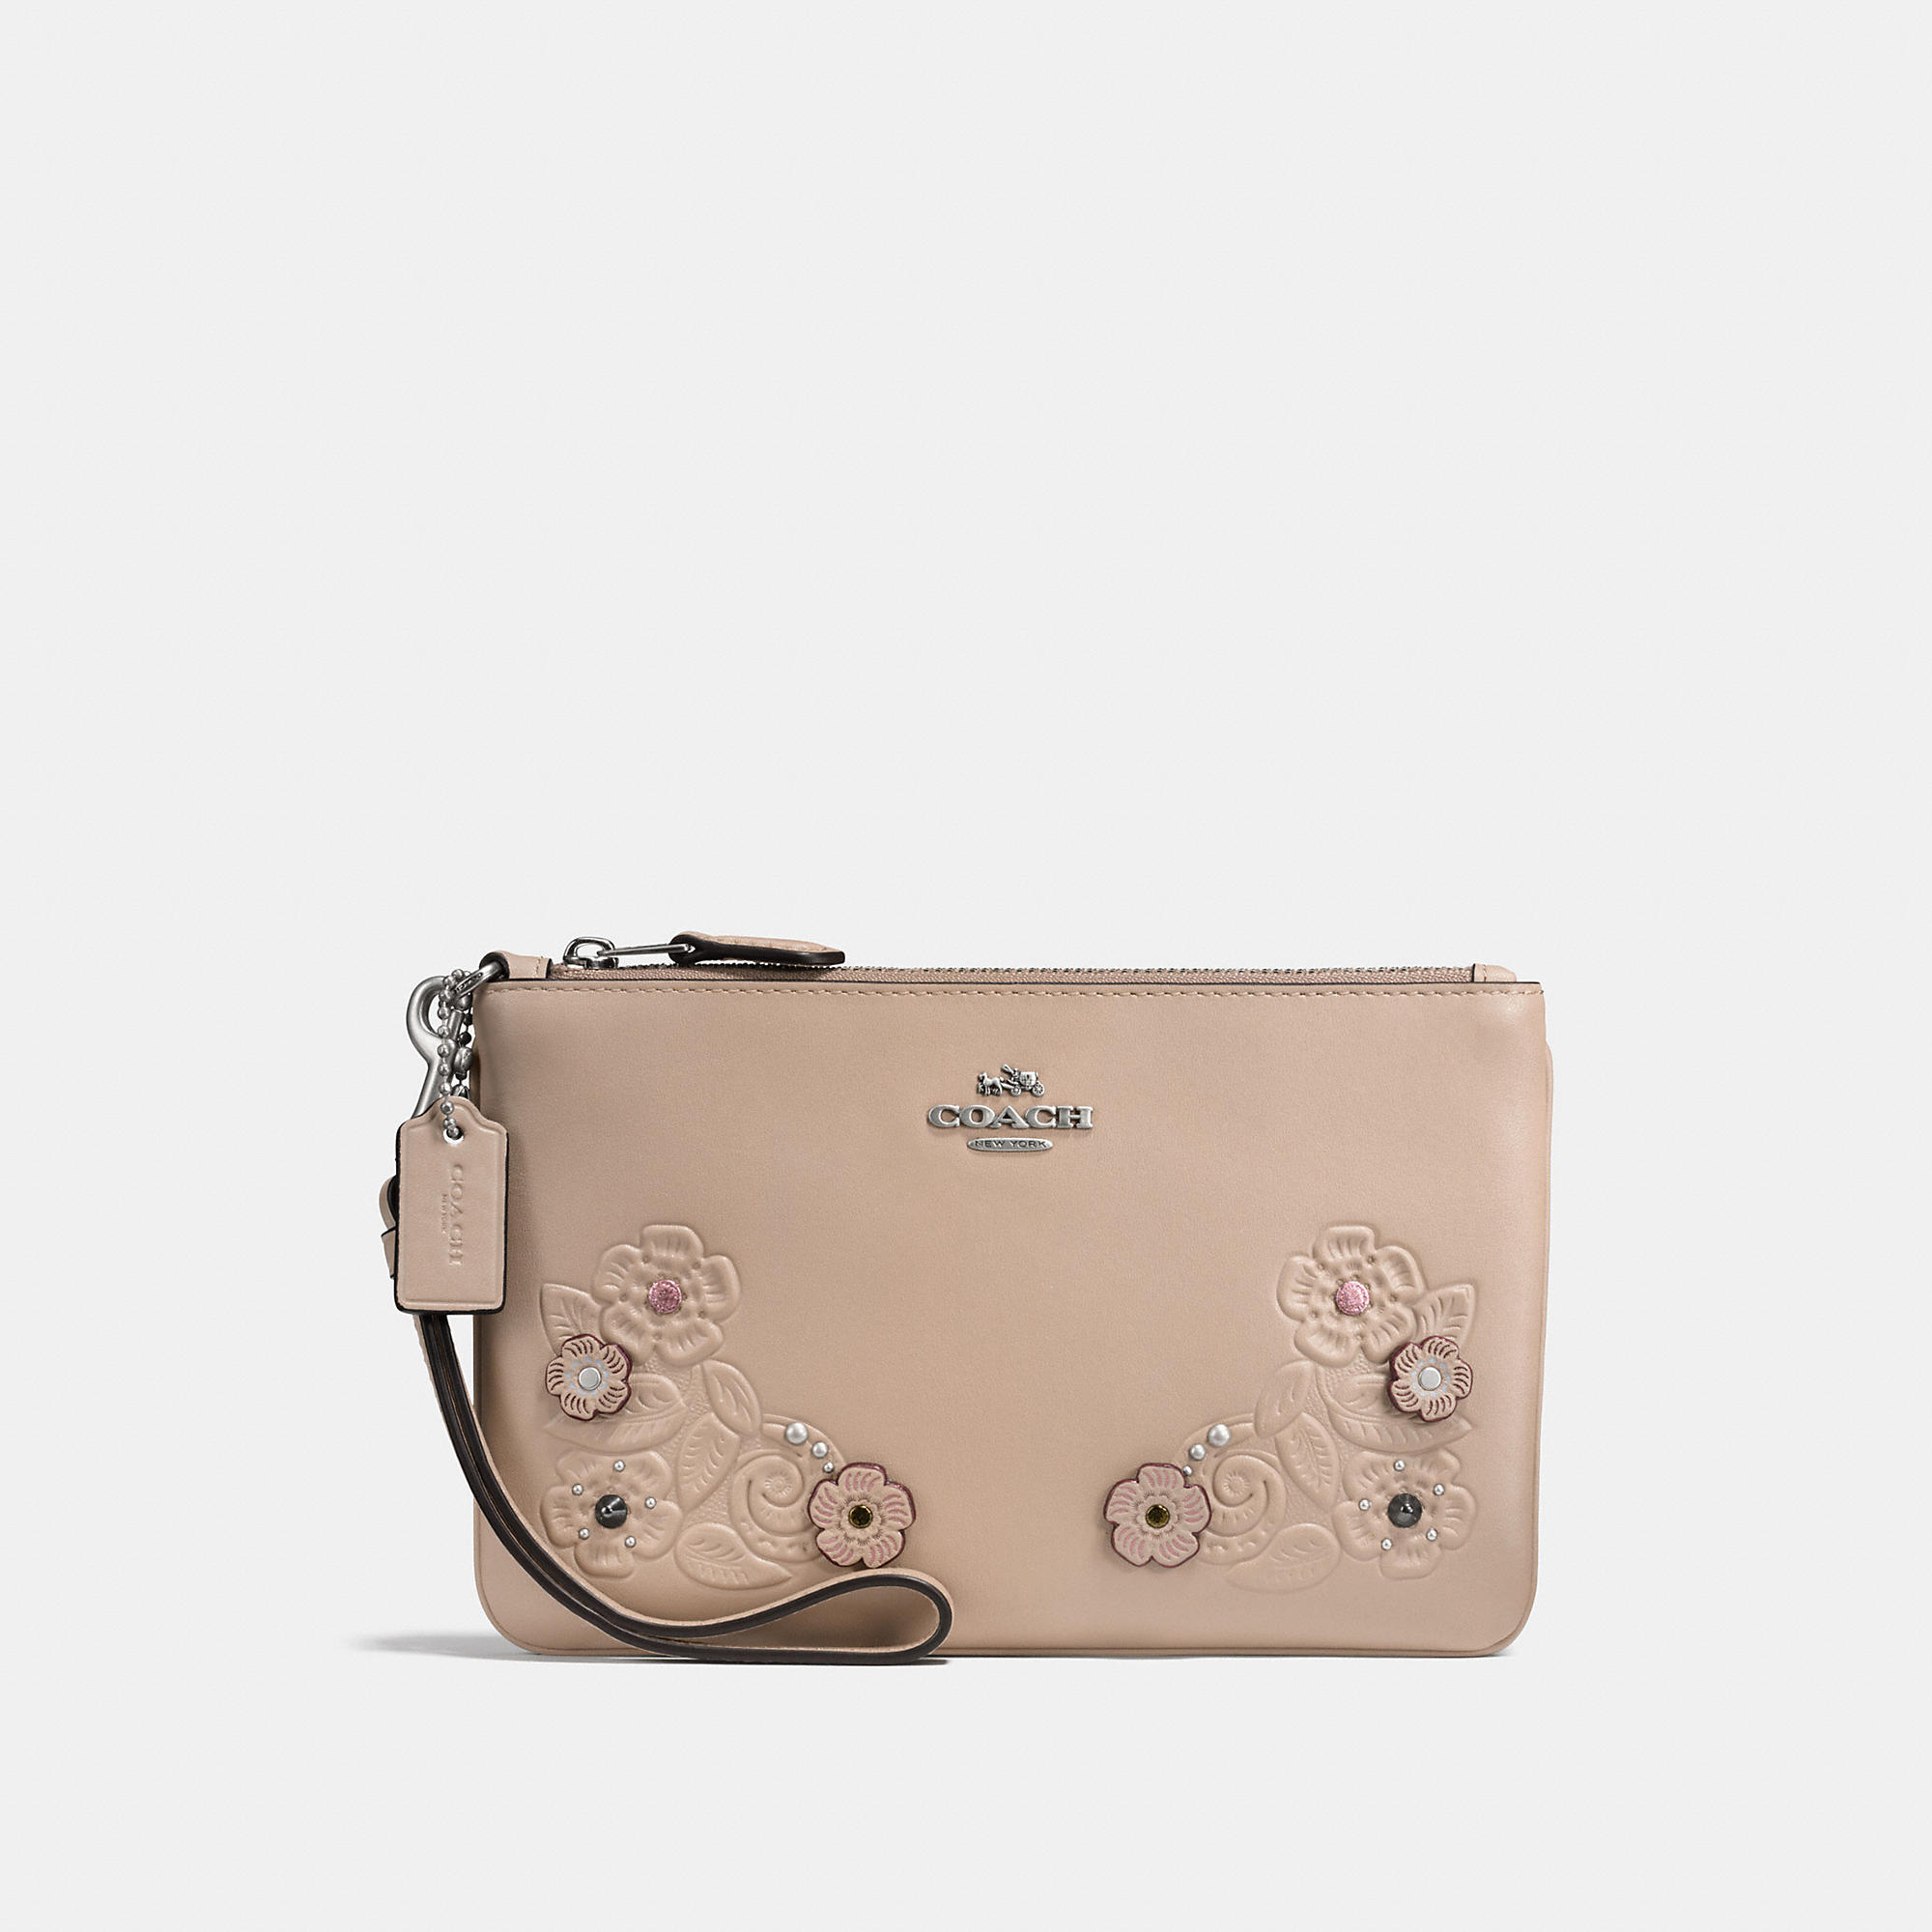 Coach Small Wristlet In Glovetanned Leather With Tea Rose Tooling